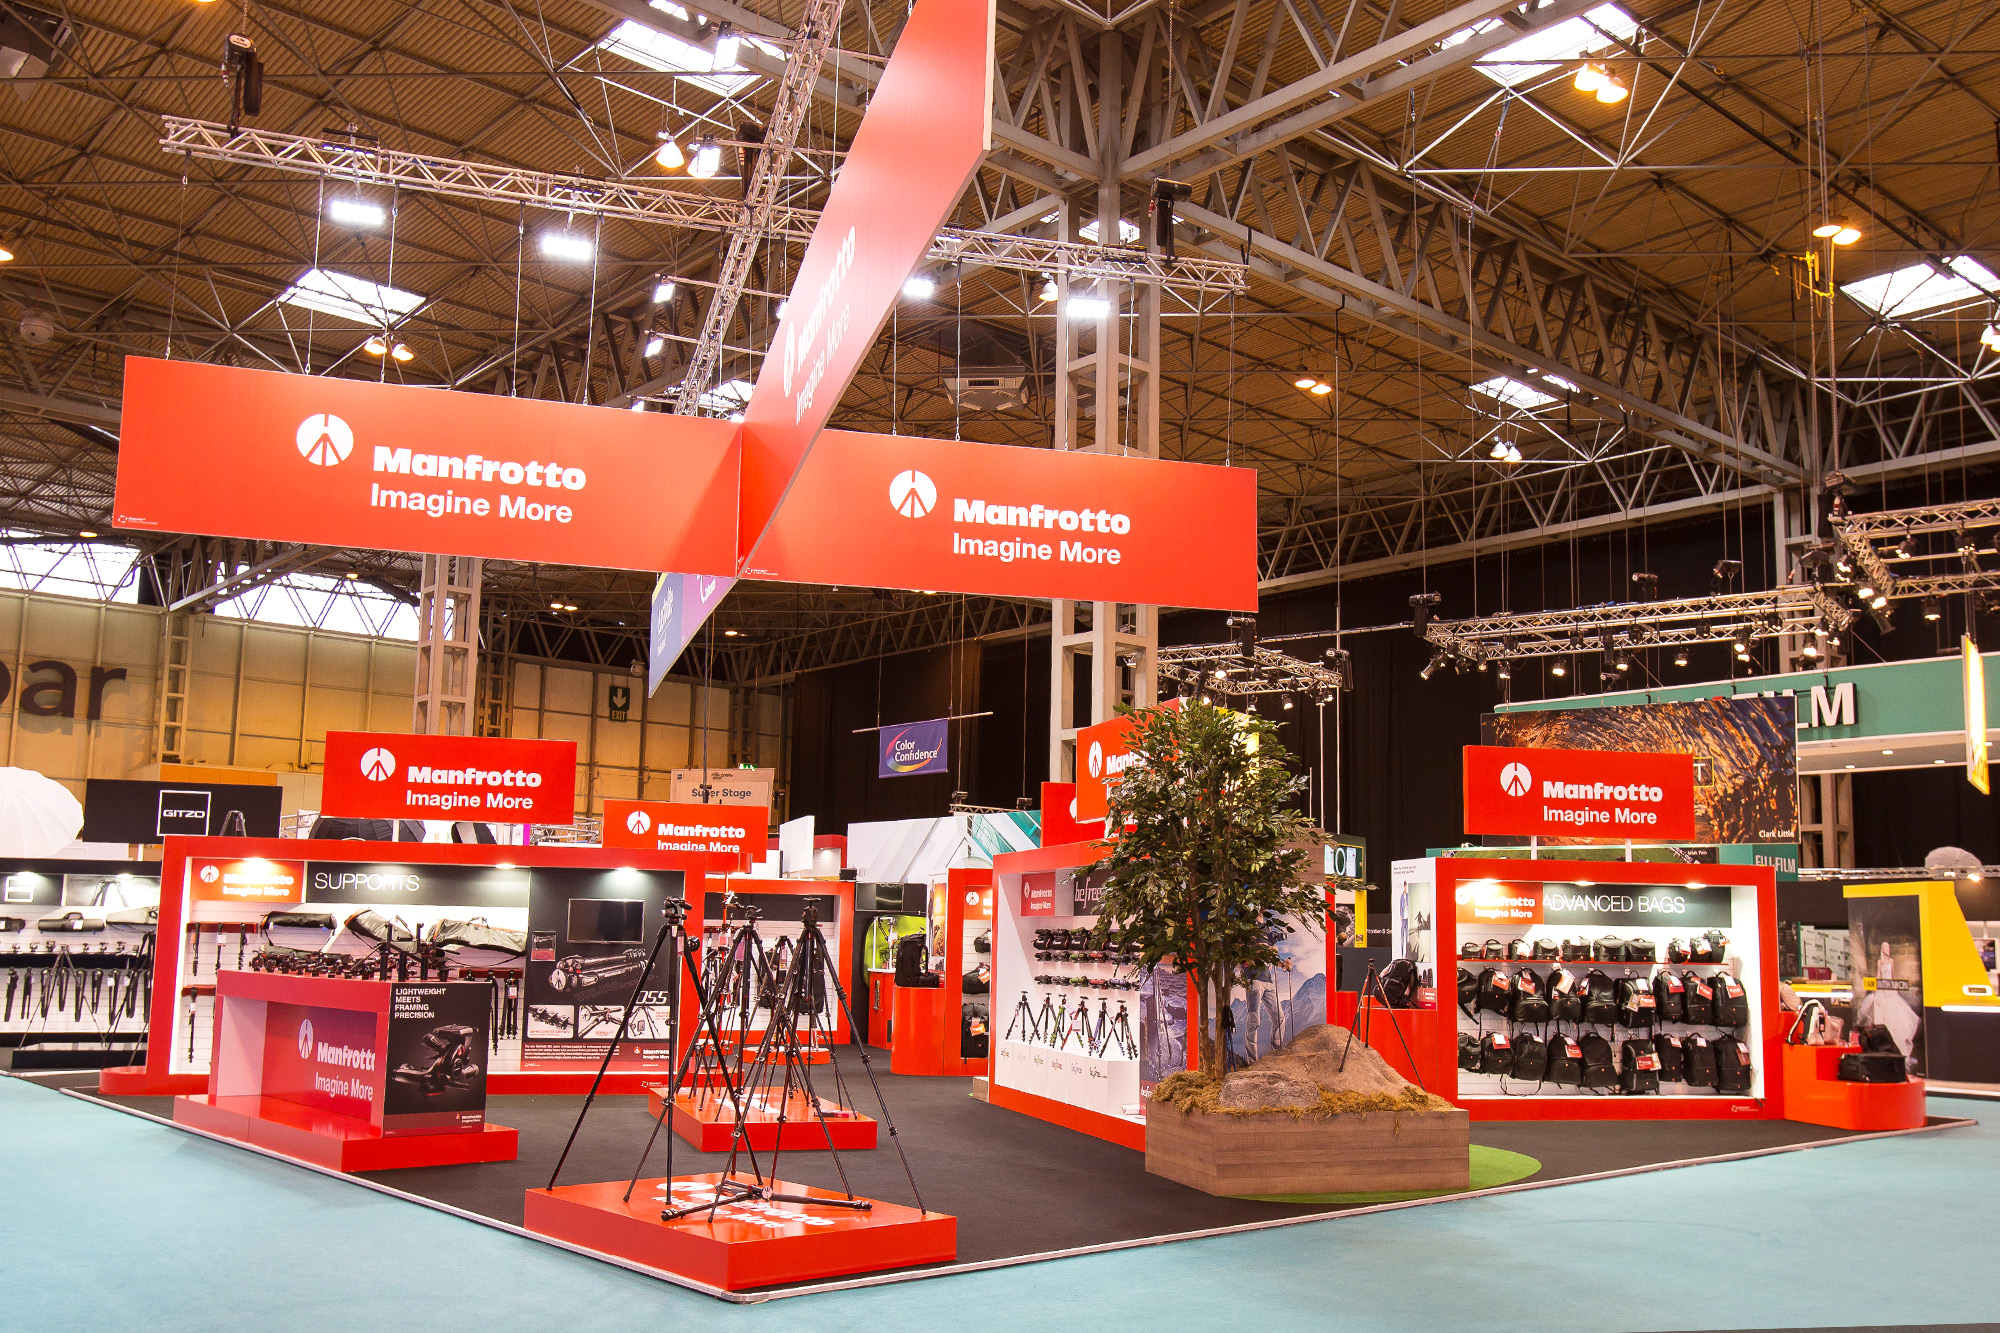 Exhibition Design for Manfrotto at The Photography Show